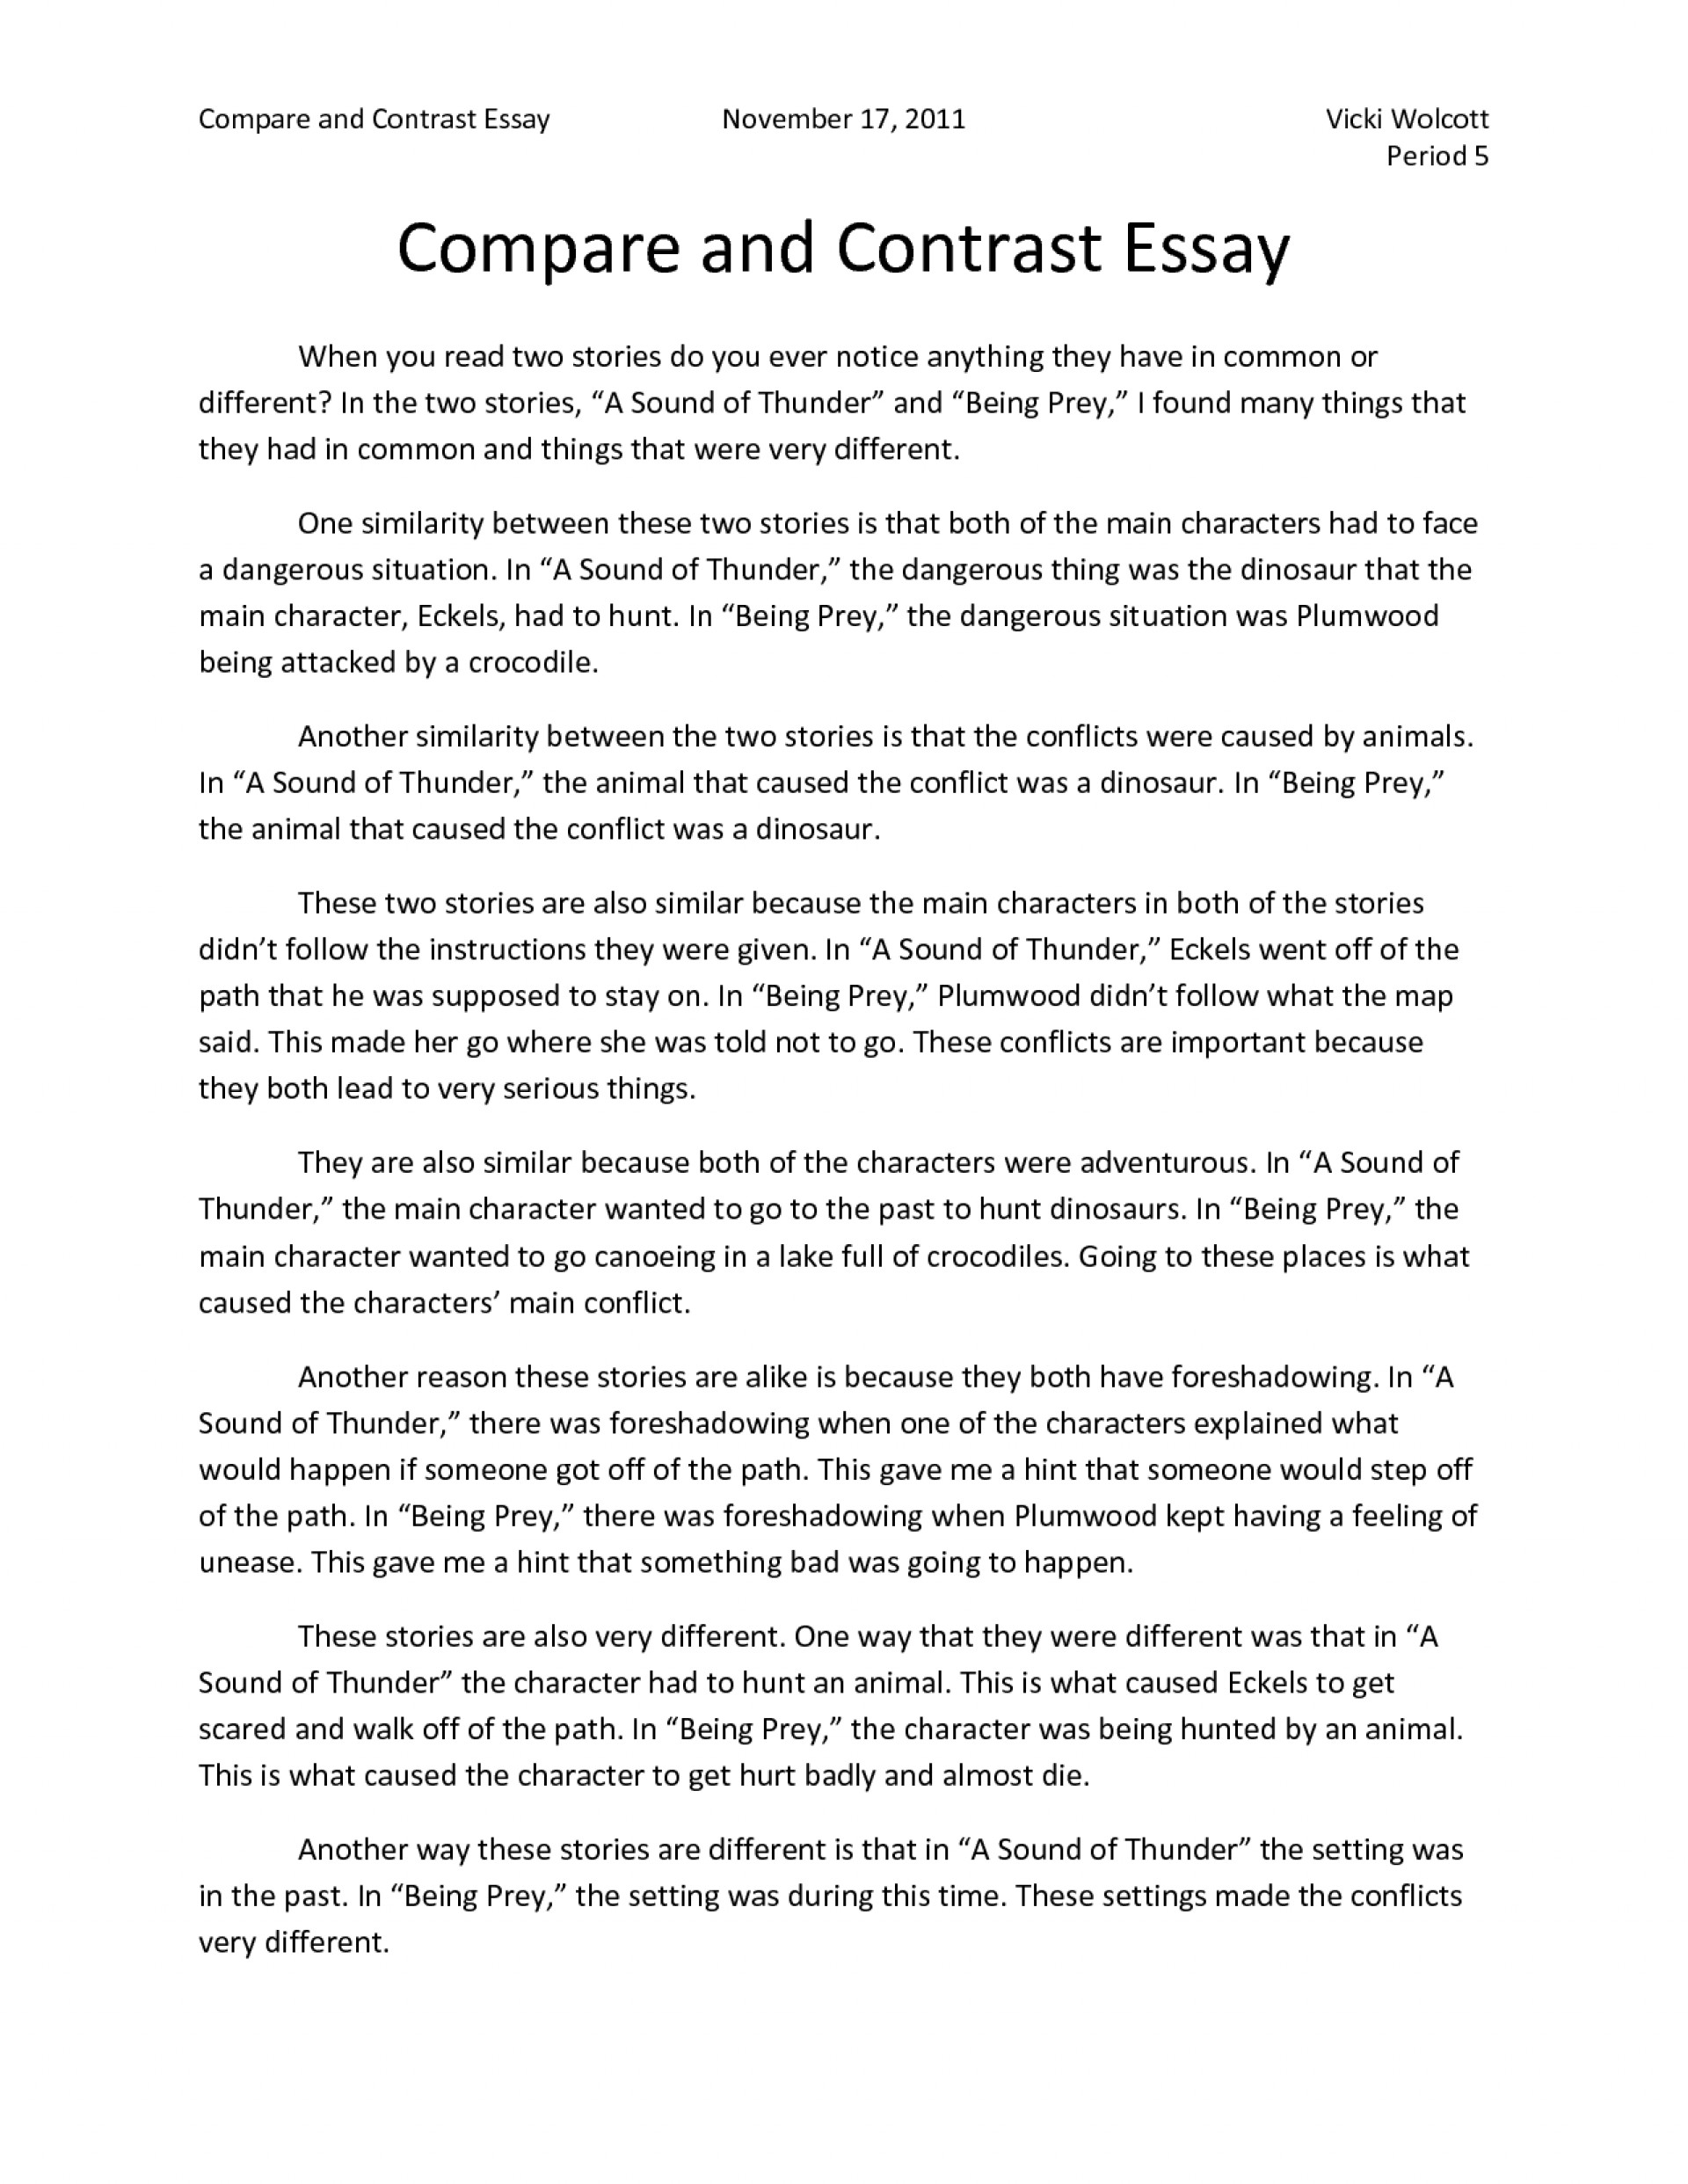 004 Compare And Contrast Basic How To Start Comparative Essay Beautiful A Writing Comparison Begin Thesis 1920